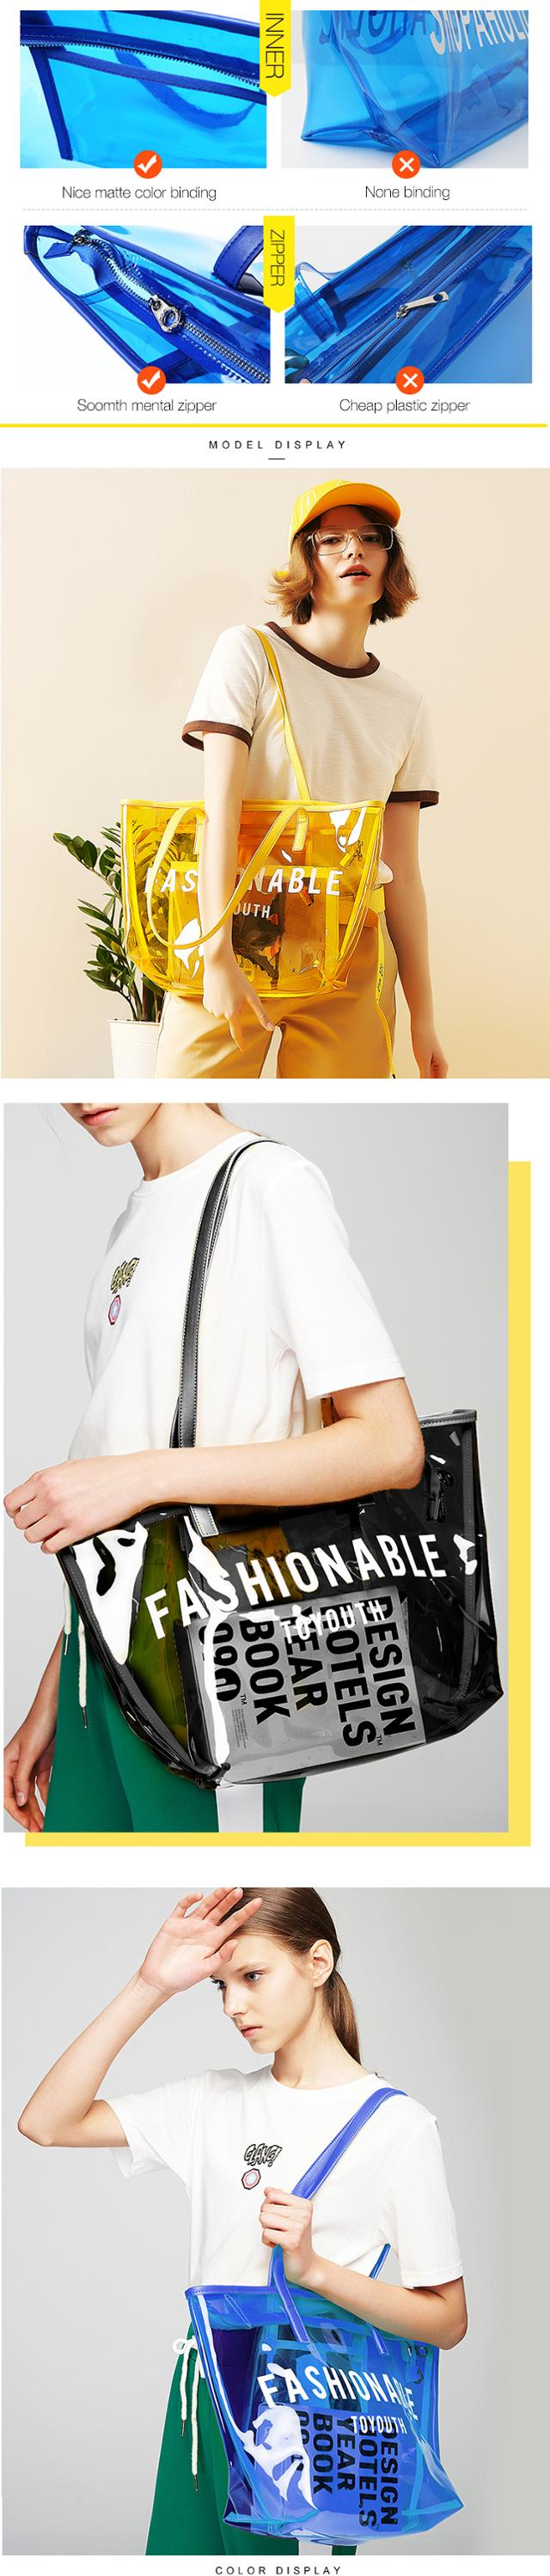 clear-tote-bags1_02